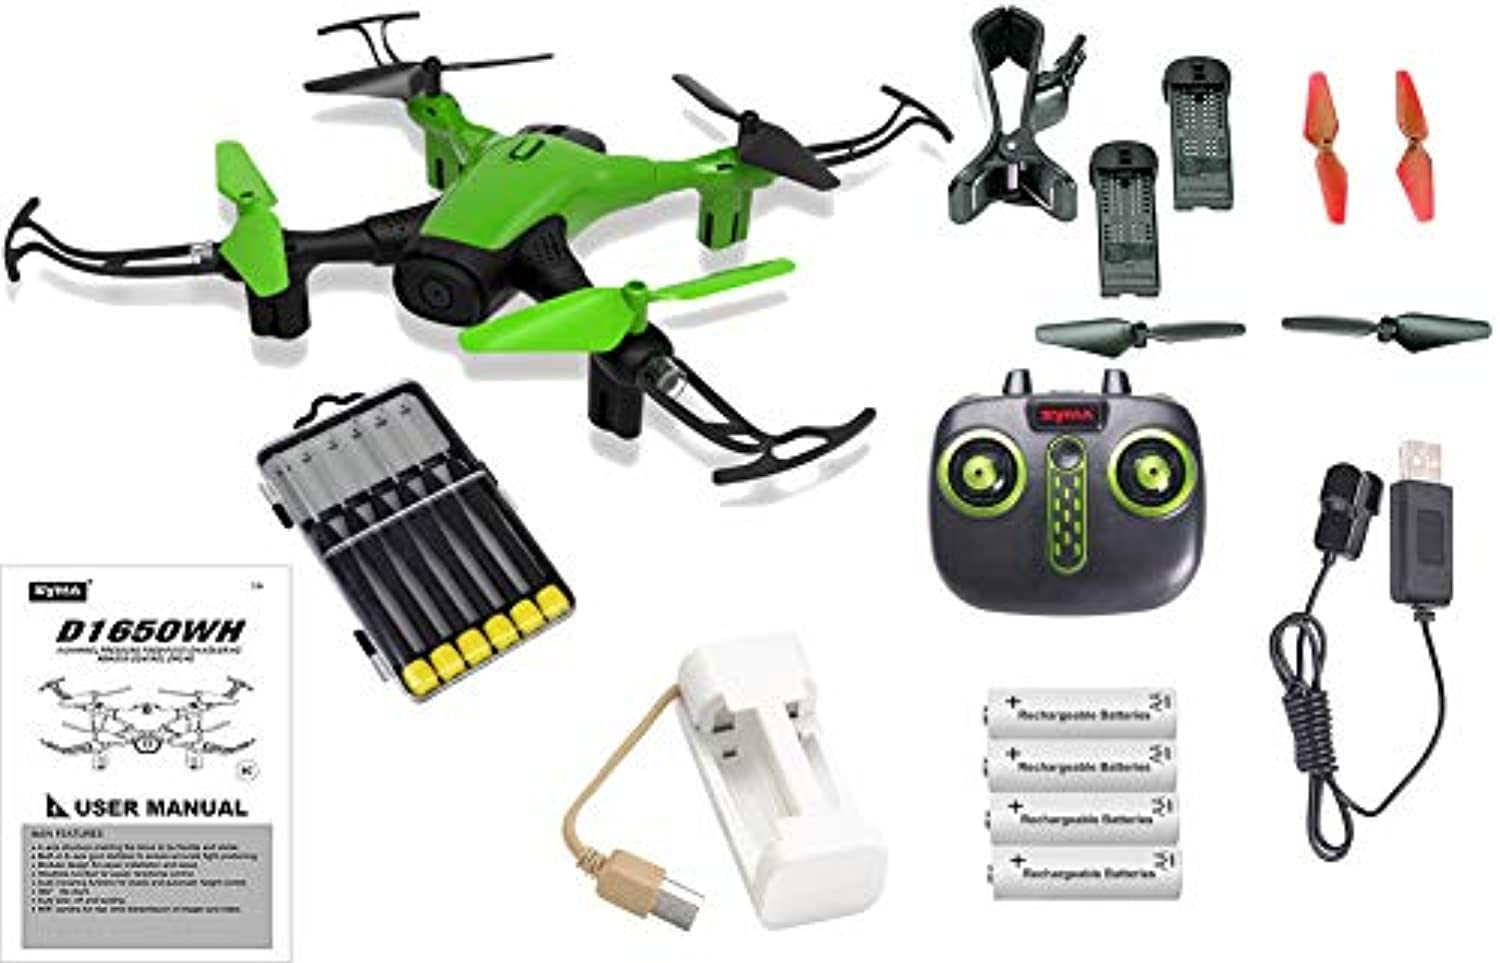 Green Sky Phantom WiFi FPV Drone with HD Camera Live Feed 2.4GHz 4CH Bundle with Must Have Accessories - 23pcs Set